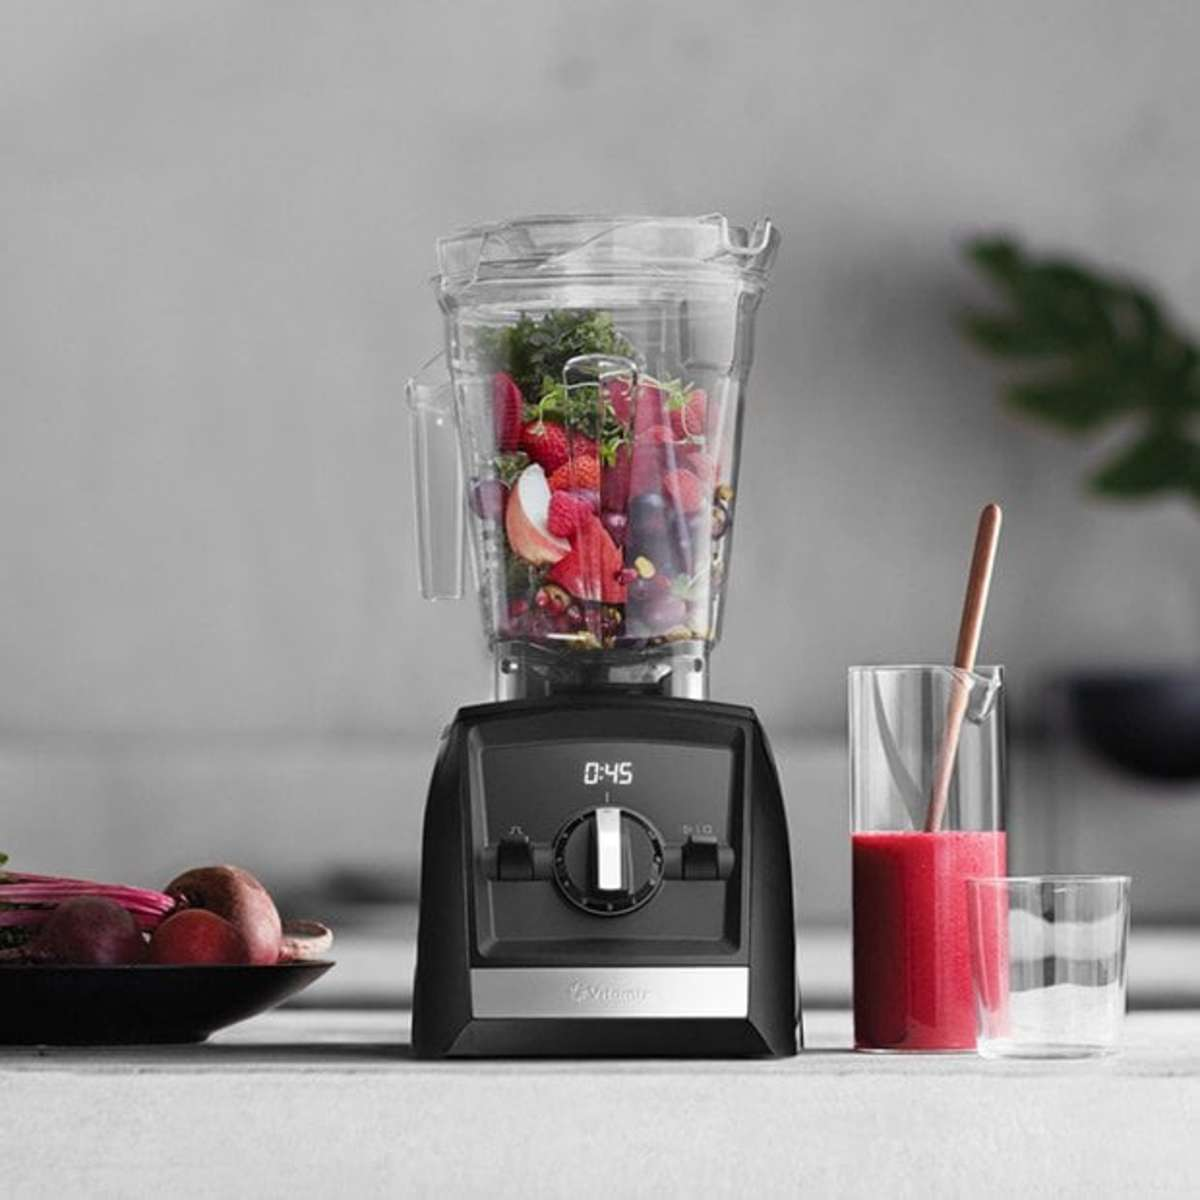 The Vitamix Ascent™ Series blender is perfect for salad dressings, hummus, soups dips and more.